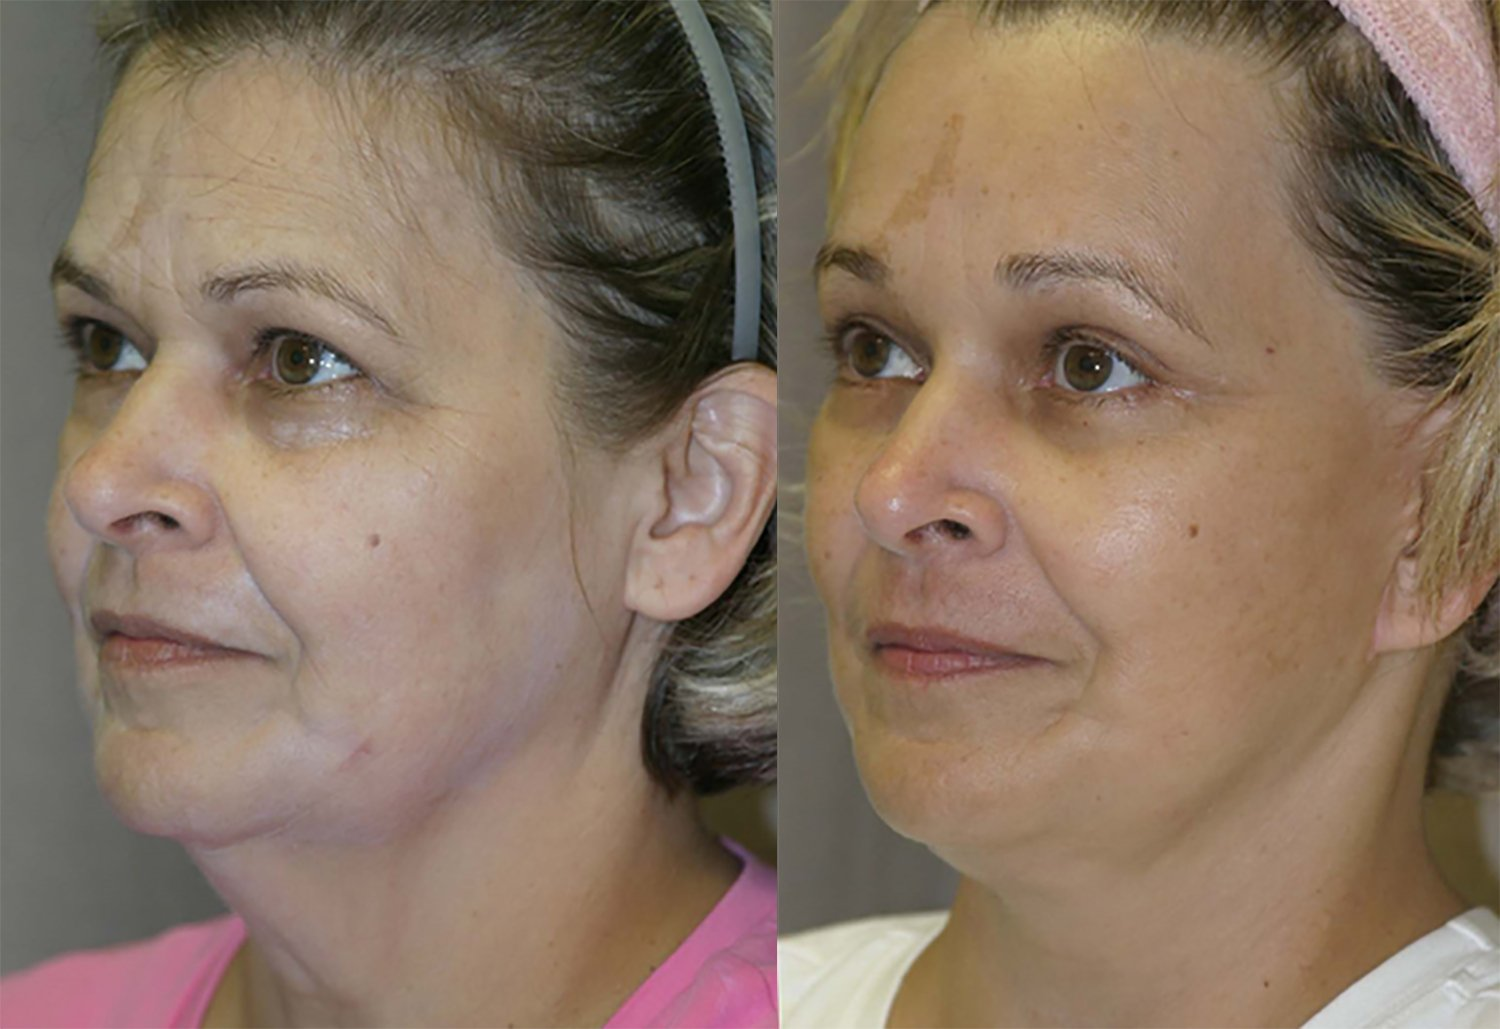 57 year-old, 9 month follow-up after facelift, lower external blepharoplasty with lateral canthoplasty, endoscopic browlift with endotine fixation oblique view